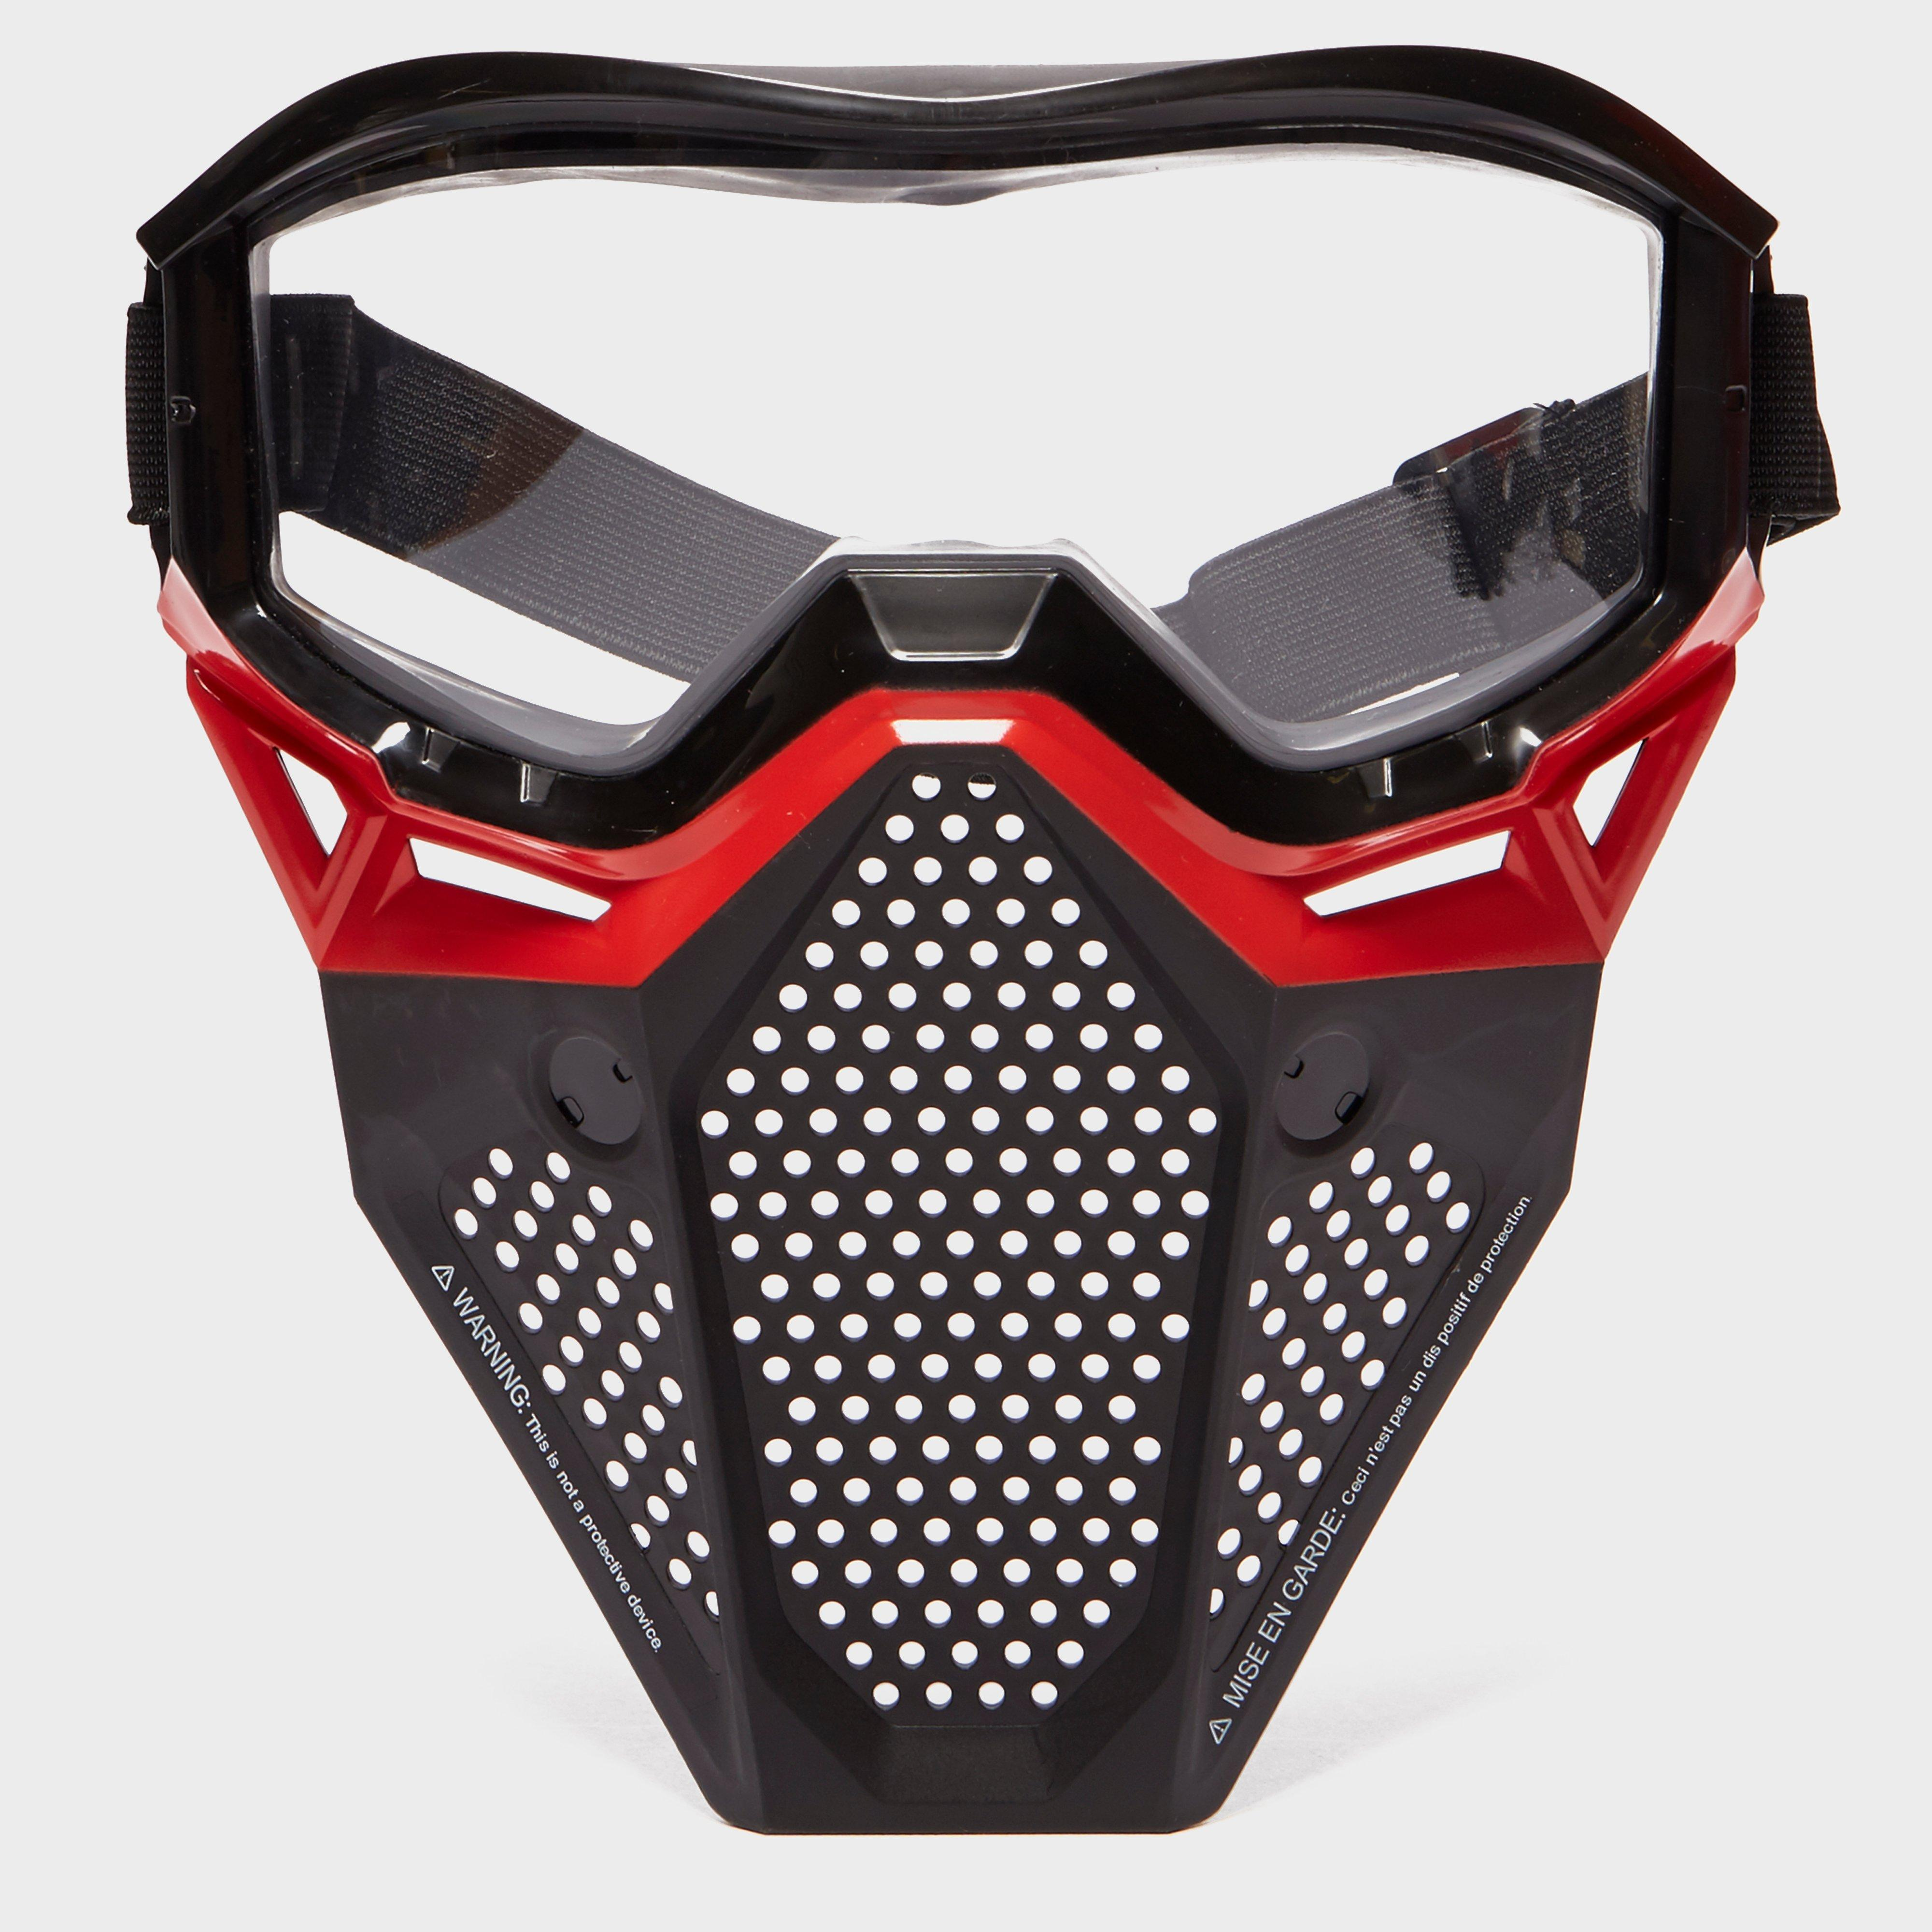 NERF Nerf Rival Face Mask (Red) - N/A, N/A